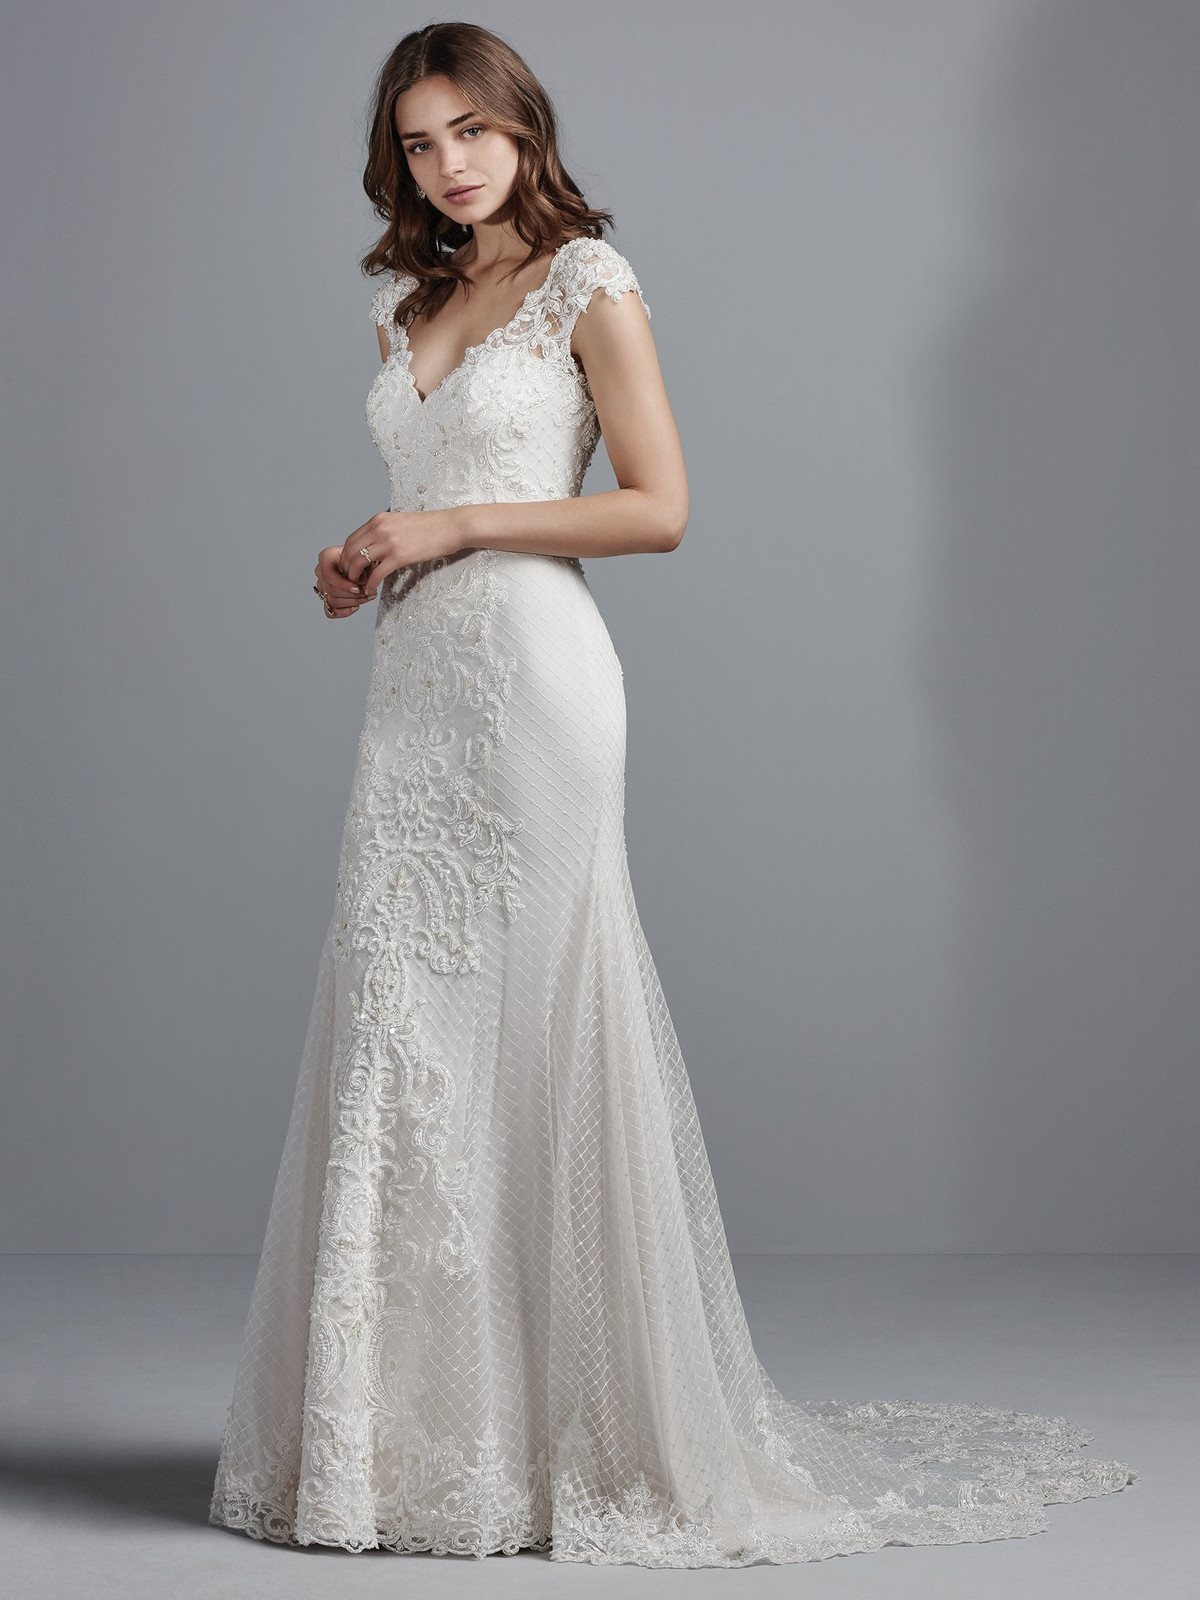 e934d016ff1 This elegant sheath wedding gown features crosshatched tulle